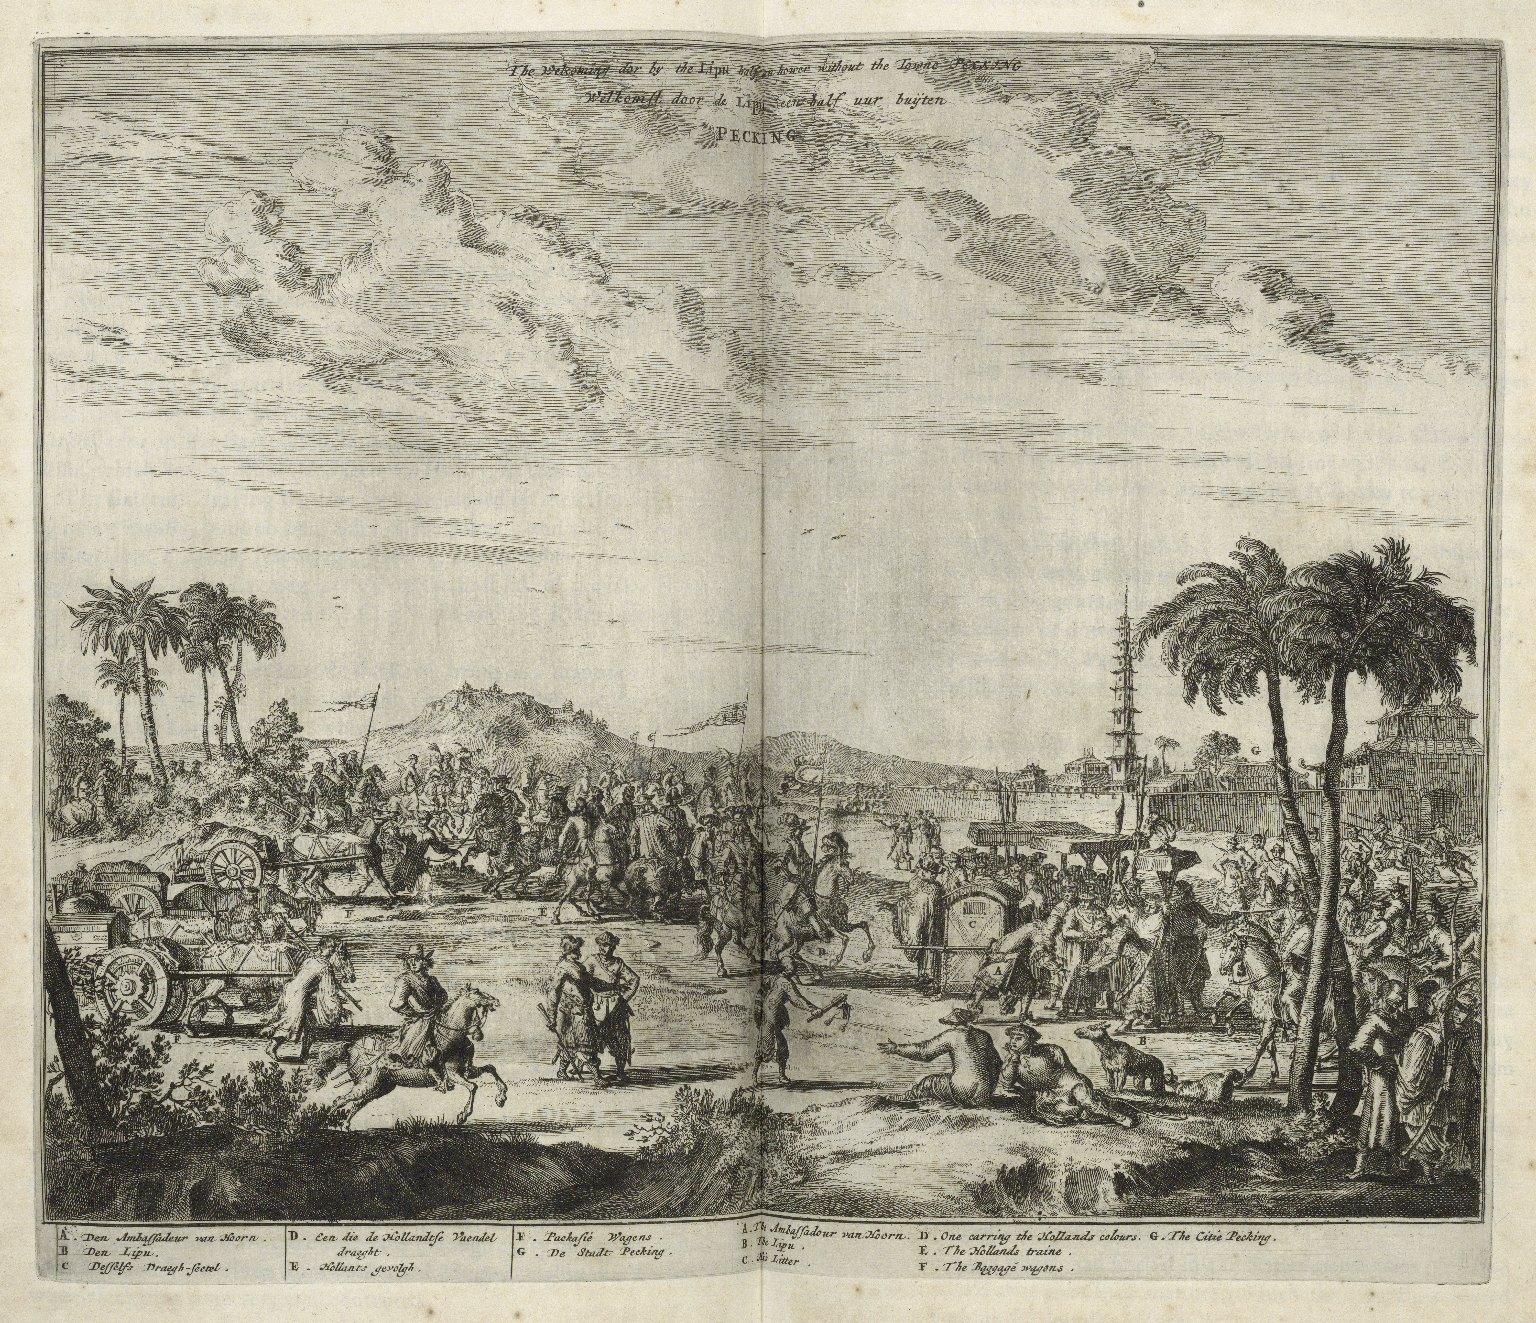 Atlas Chinensis: being a second part of a relation of remarkable passages in two embassies from the East-India Company of the United Provinces, to the vice-roy Singlamong and General Taising Lipovi, and to Konchi, Emperor of China and East-Tartary.